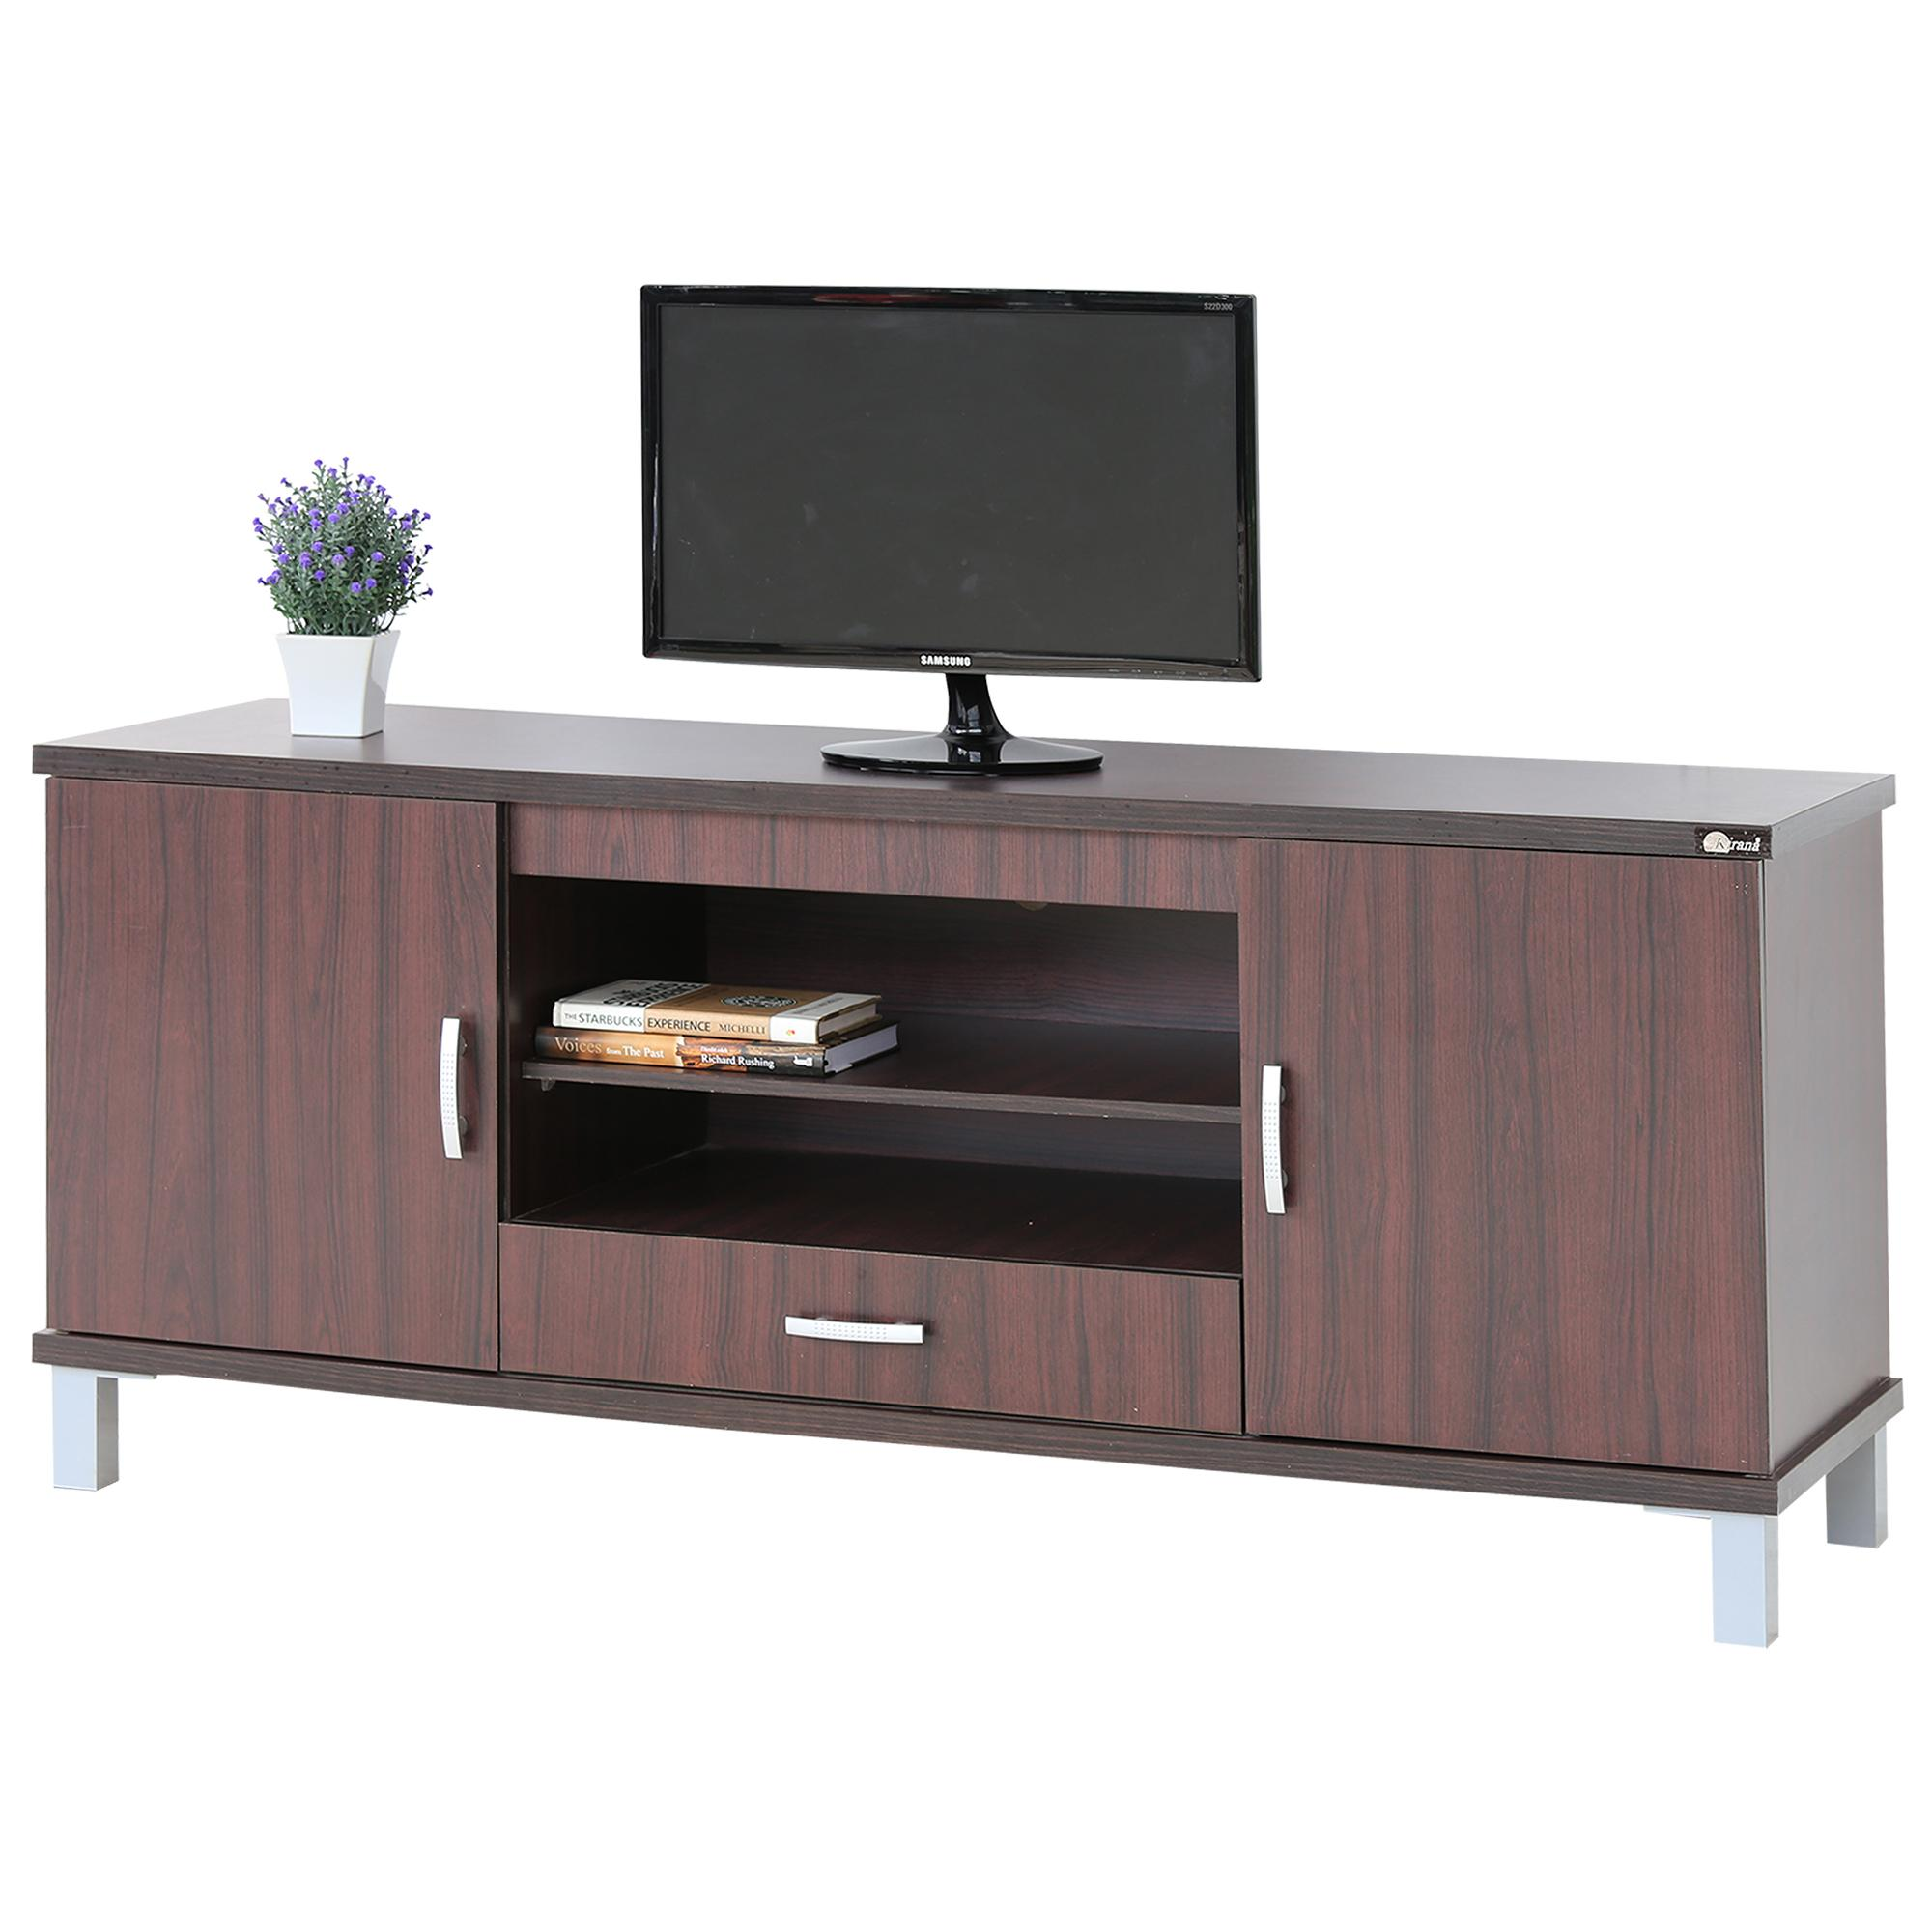 Kirana Rak TV / Audio BF 846 DM - Dark Mahogany